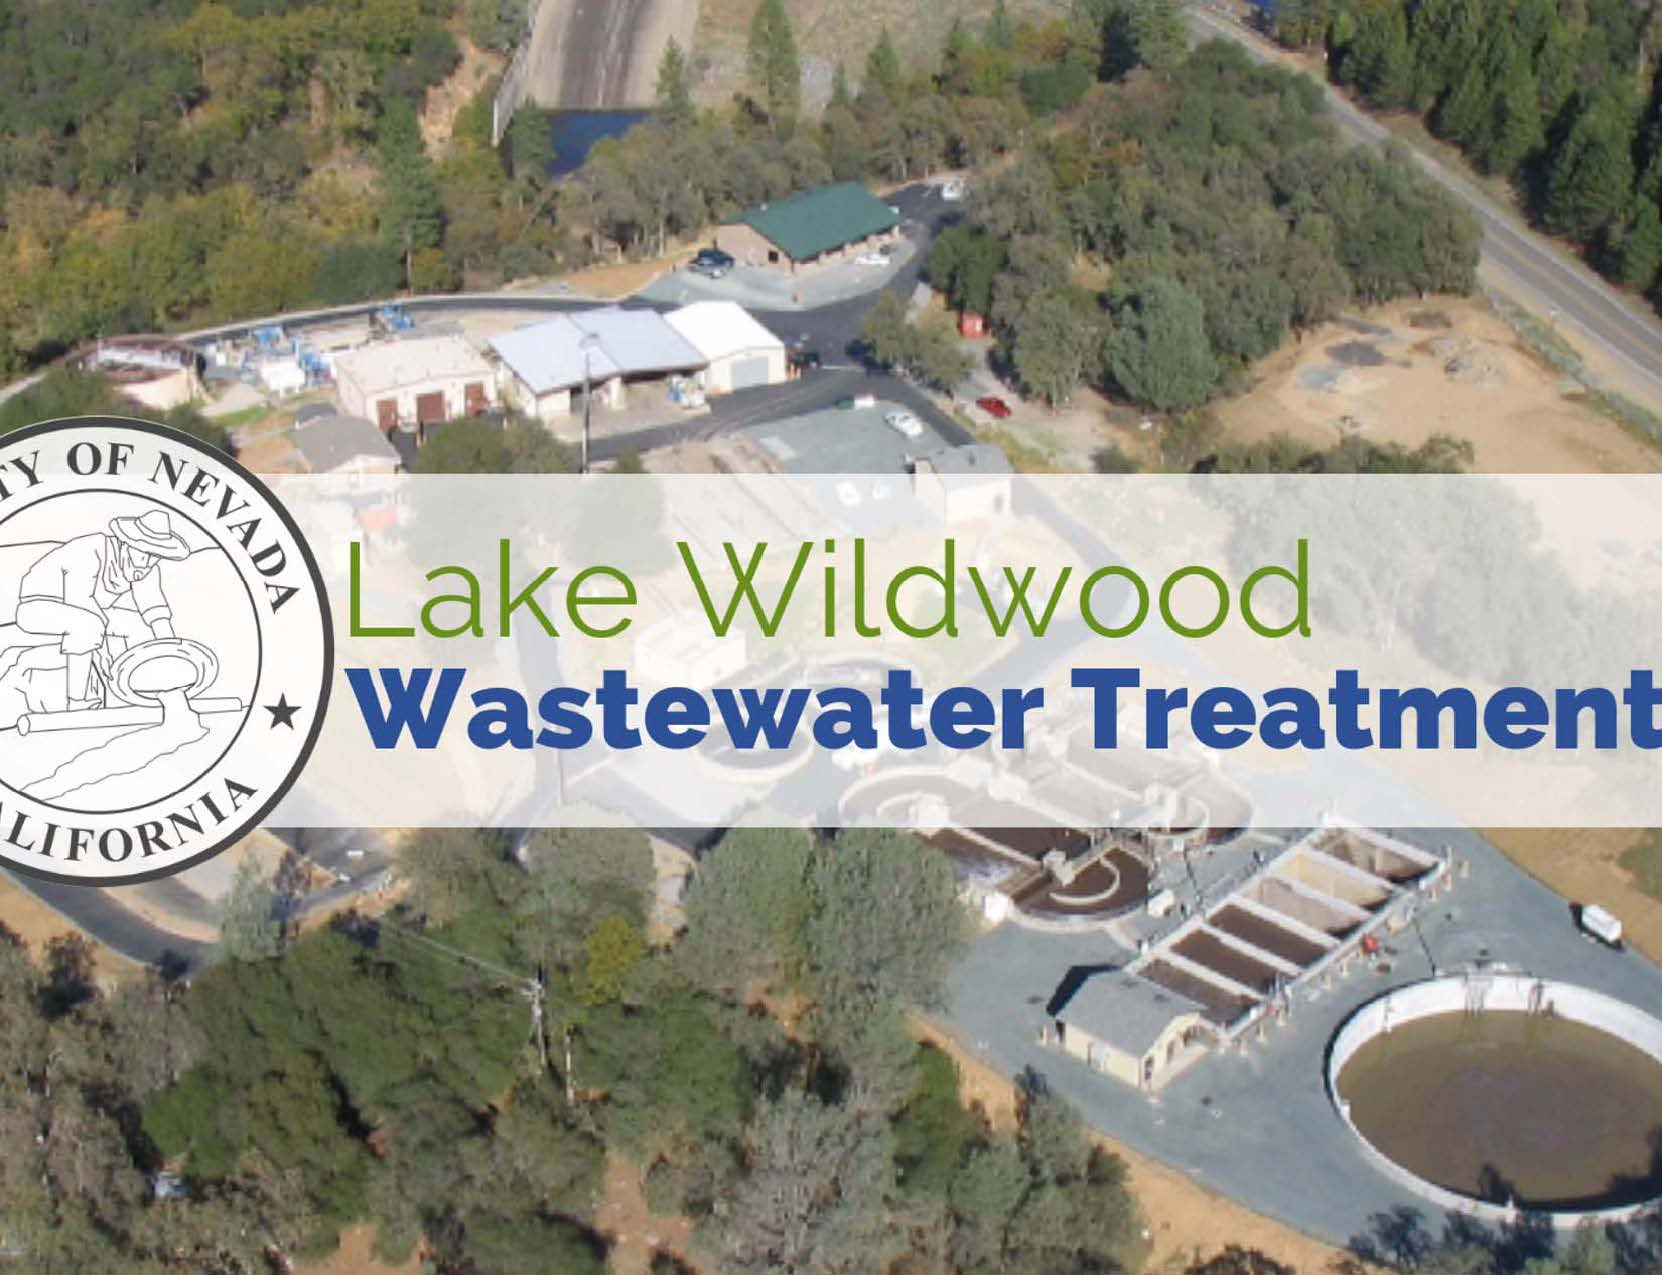 LWW Wastewater Treatment Plant Tour (1)